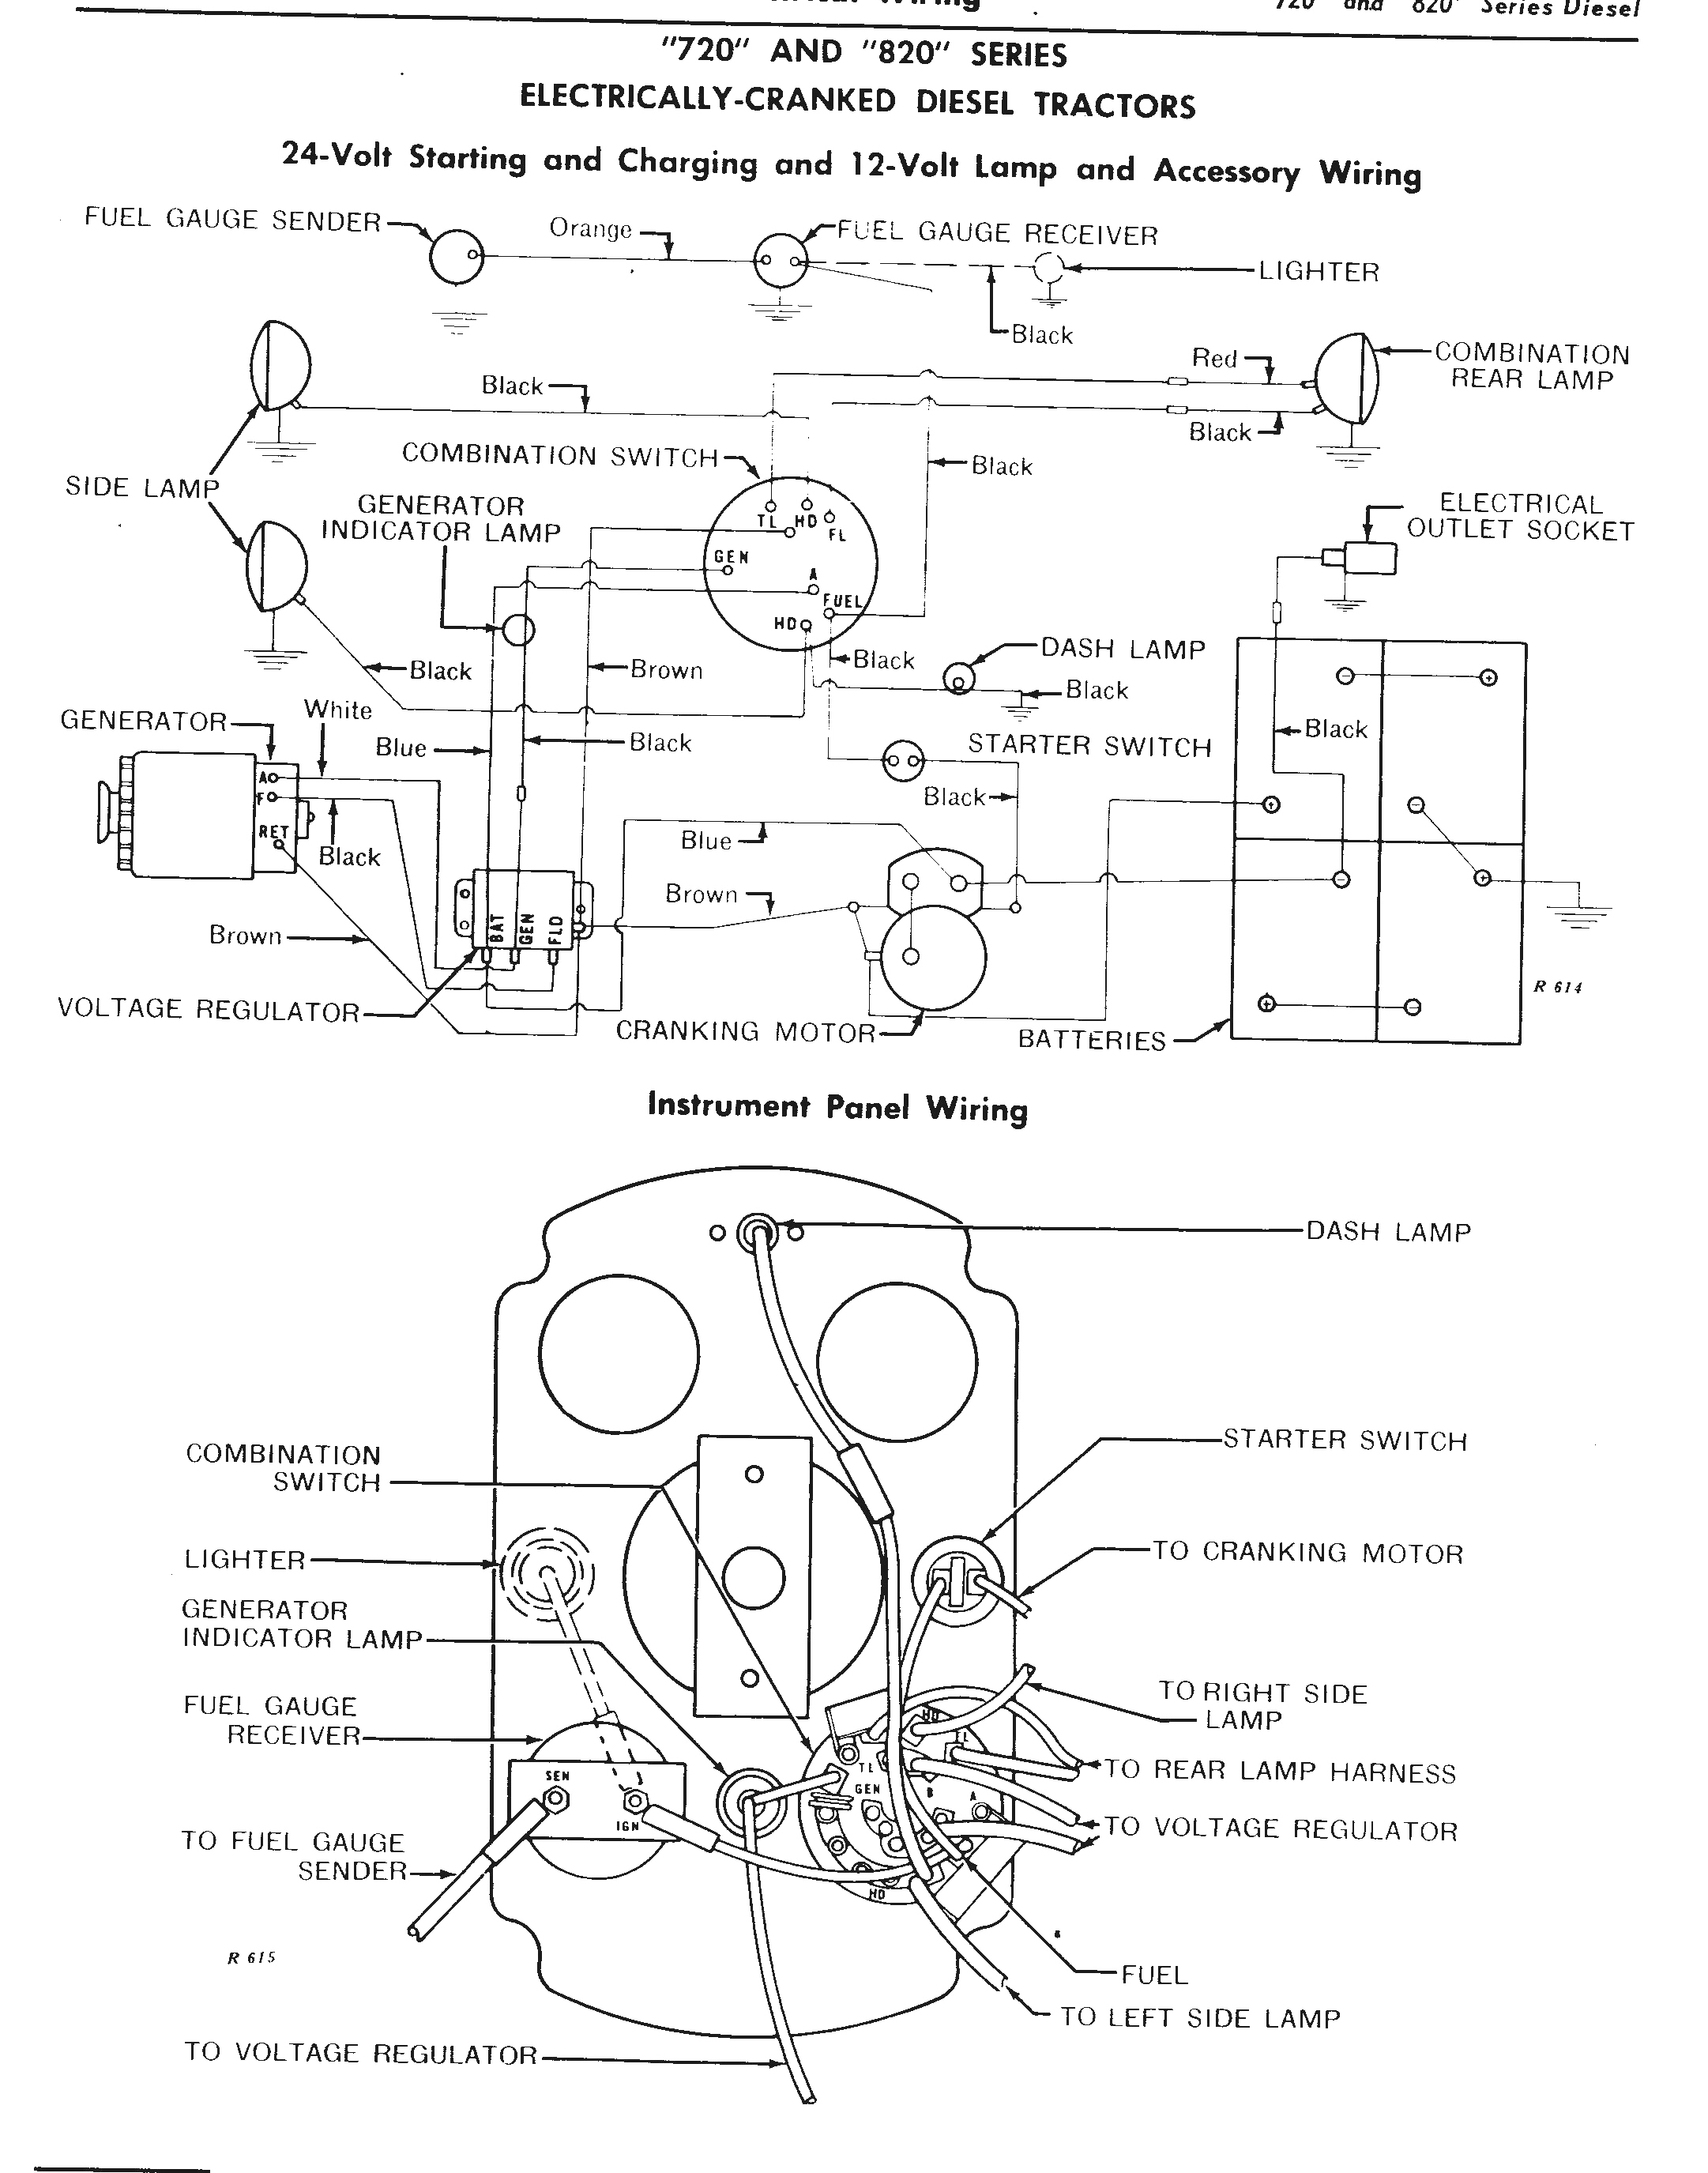 John Deere Sel Wiring Harness Diagram Data Basic Lawn Tractor 70 Harmonic Balancer